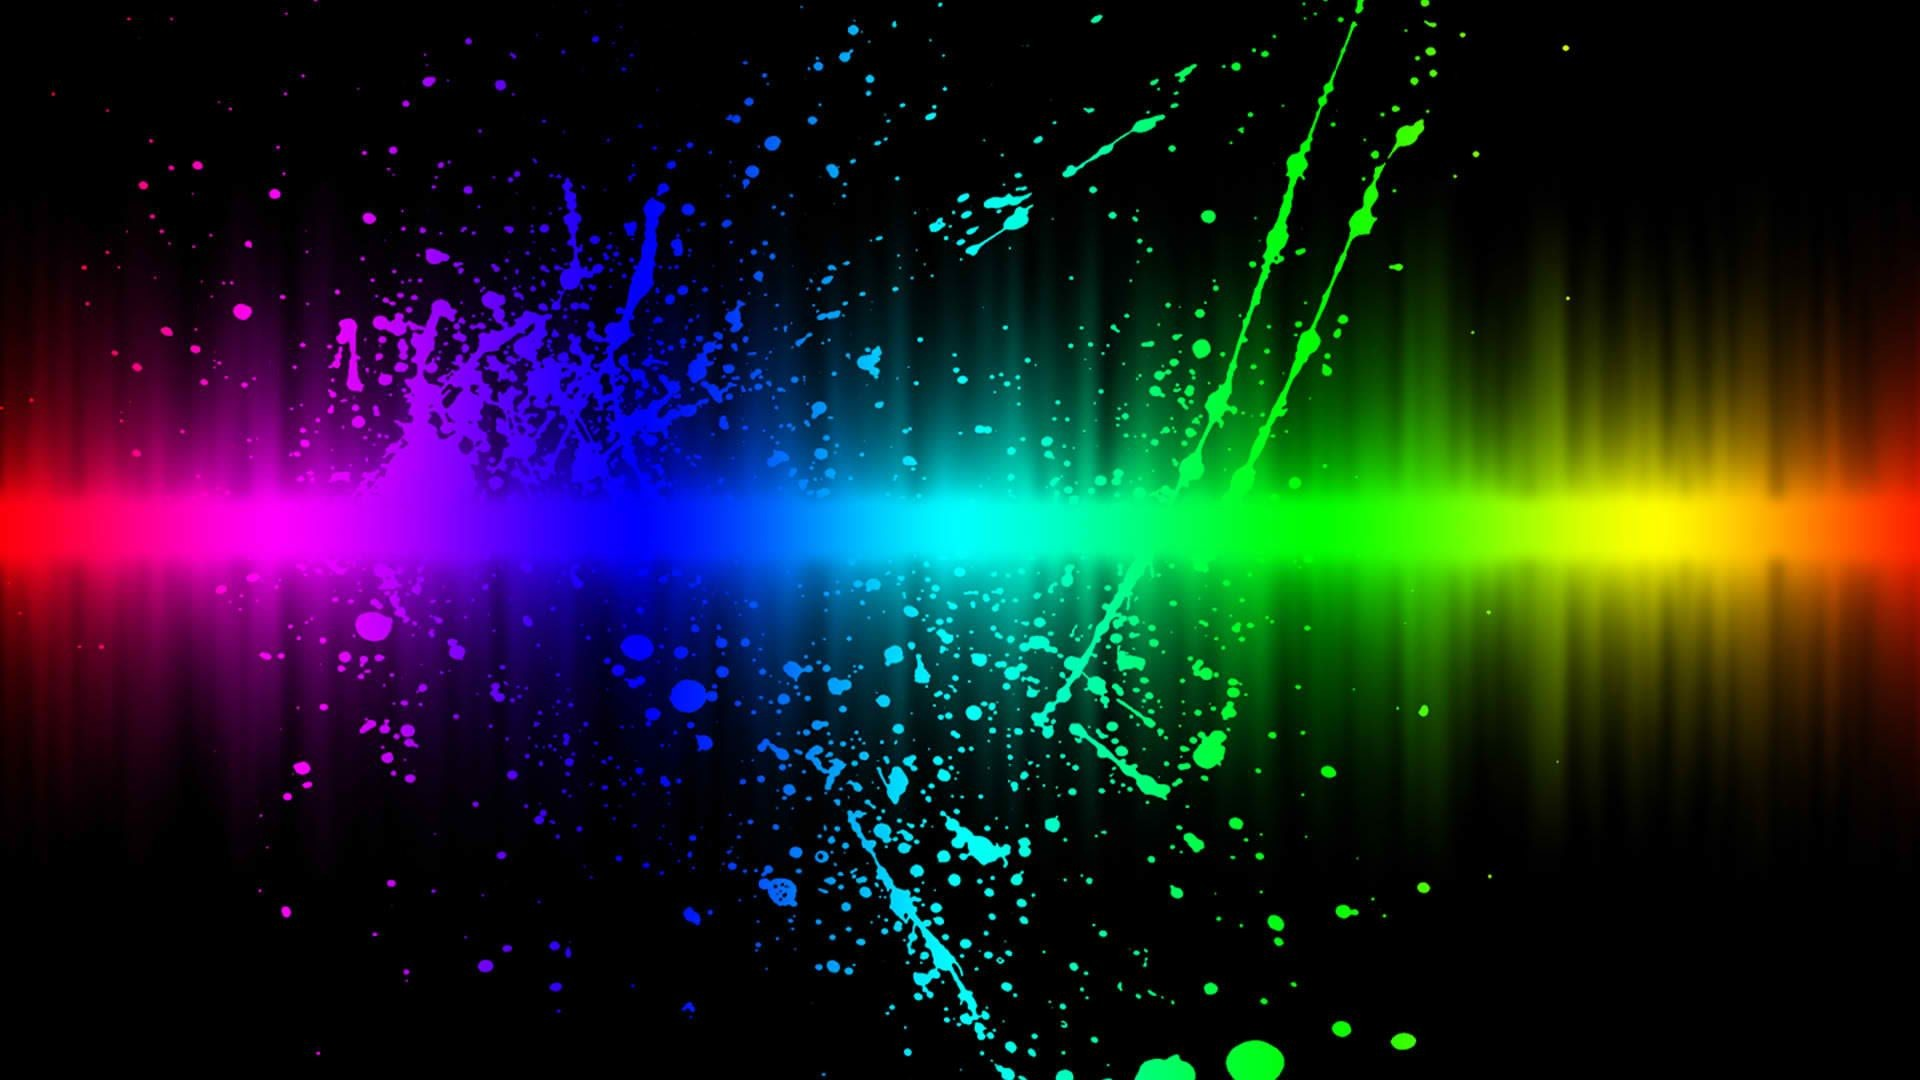 1920x1080 Colorful Backgrounds Amazing